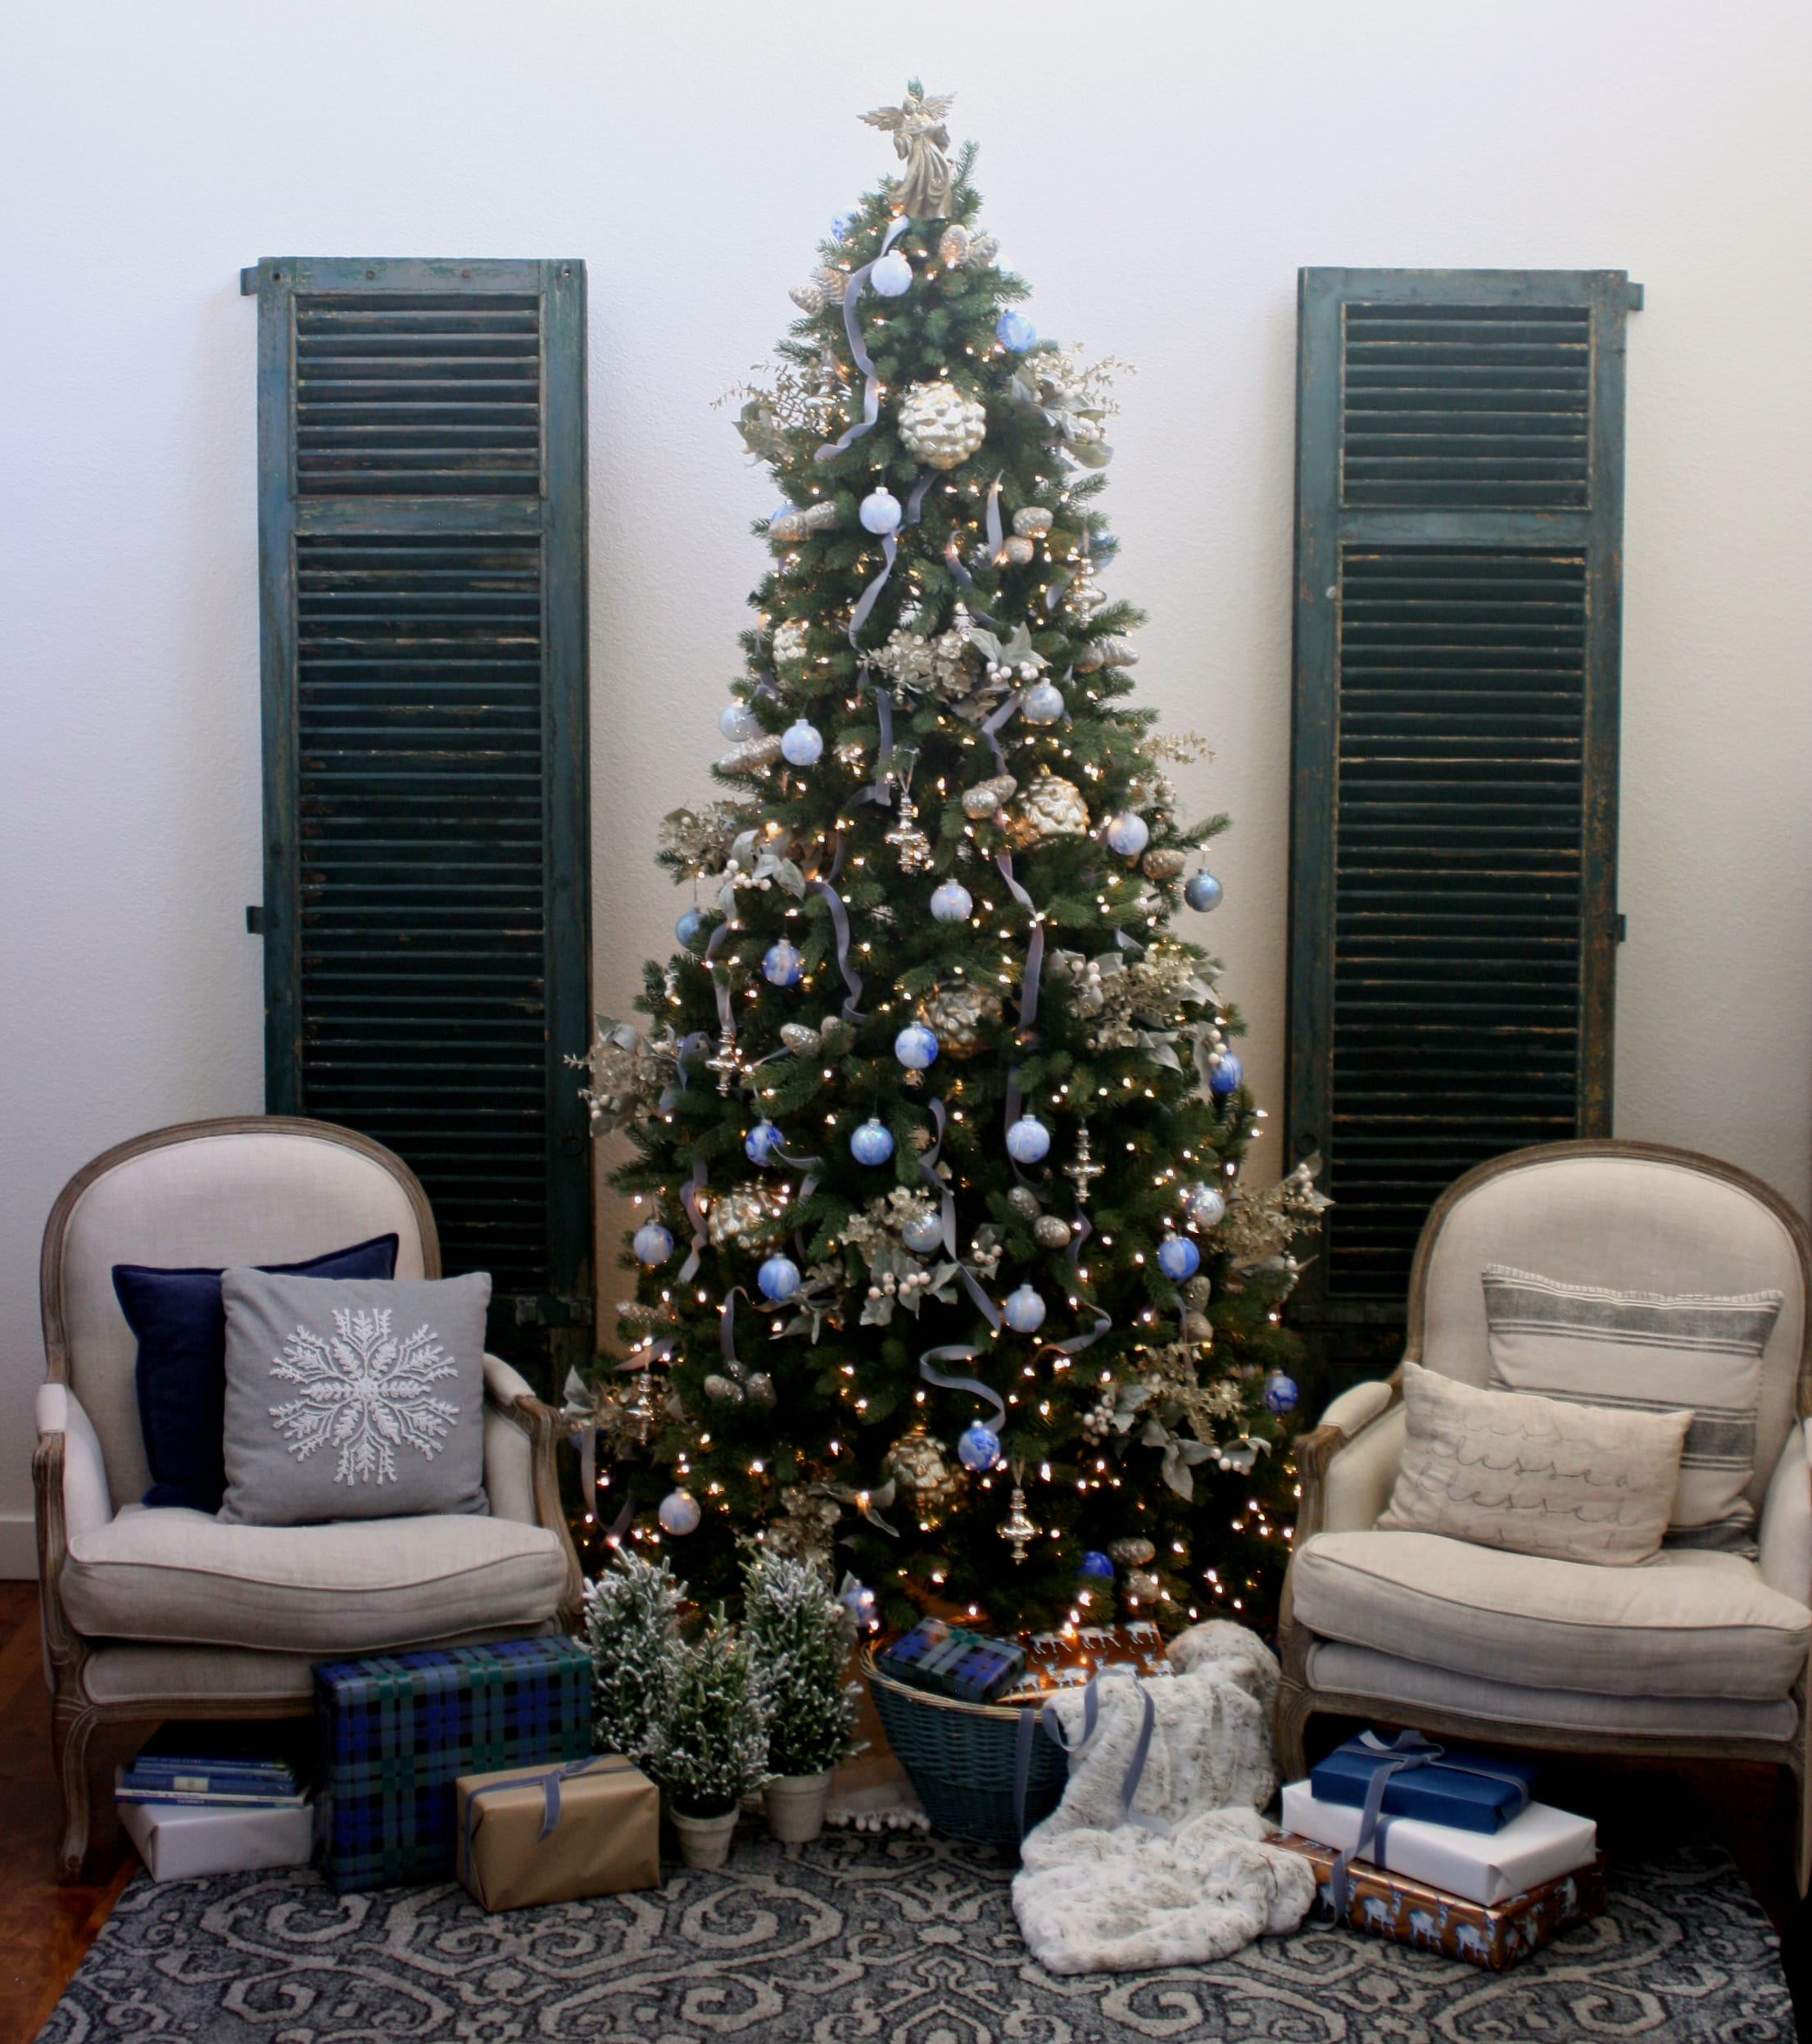 How to decorate with blues for Christmas.